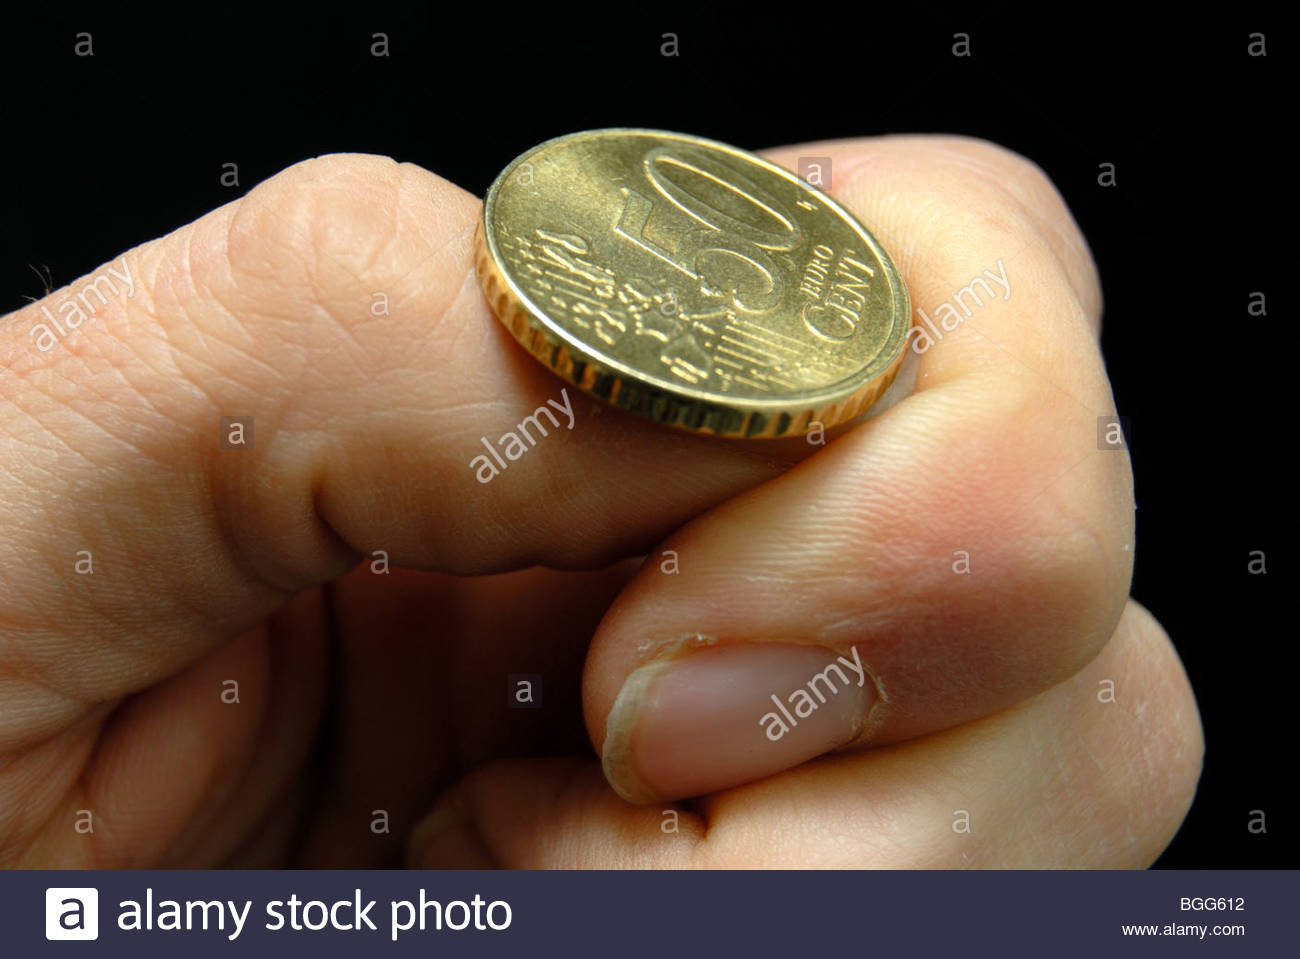 Flipping a Euro 50c coin. - Stock Image